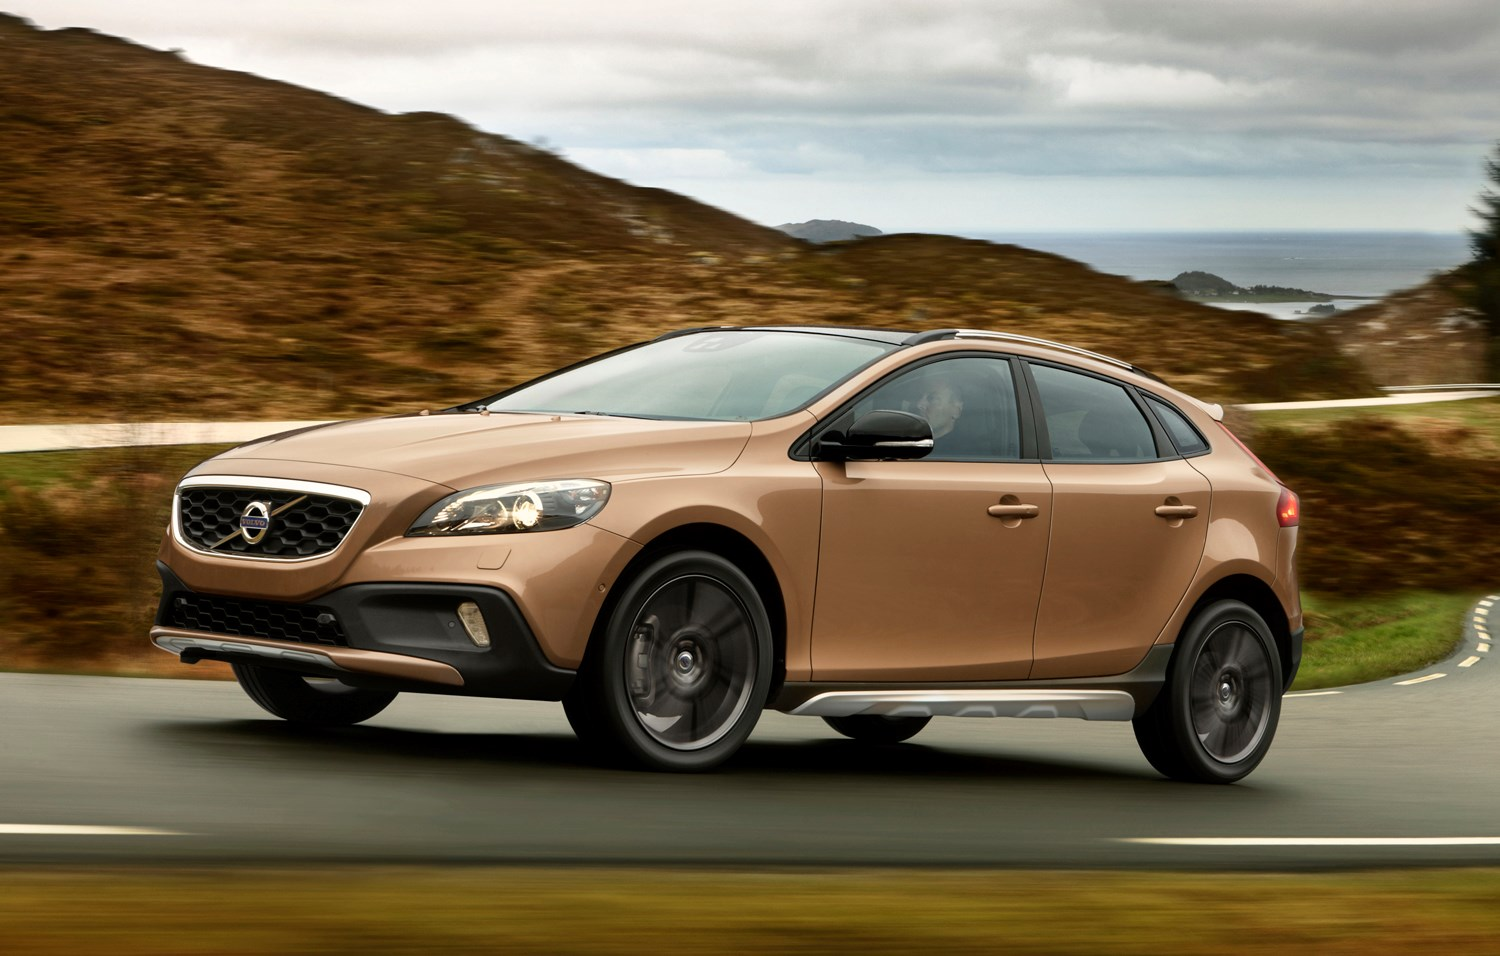 Volvo V40 Cross Country Specifications, Price, Mileage, Pics, Review